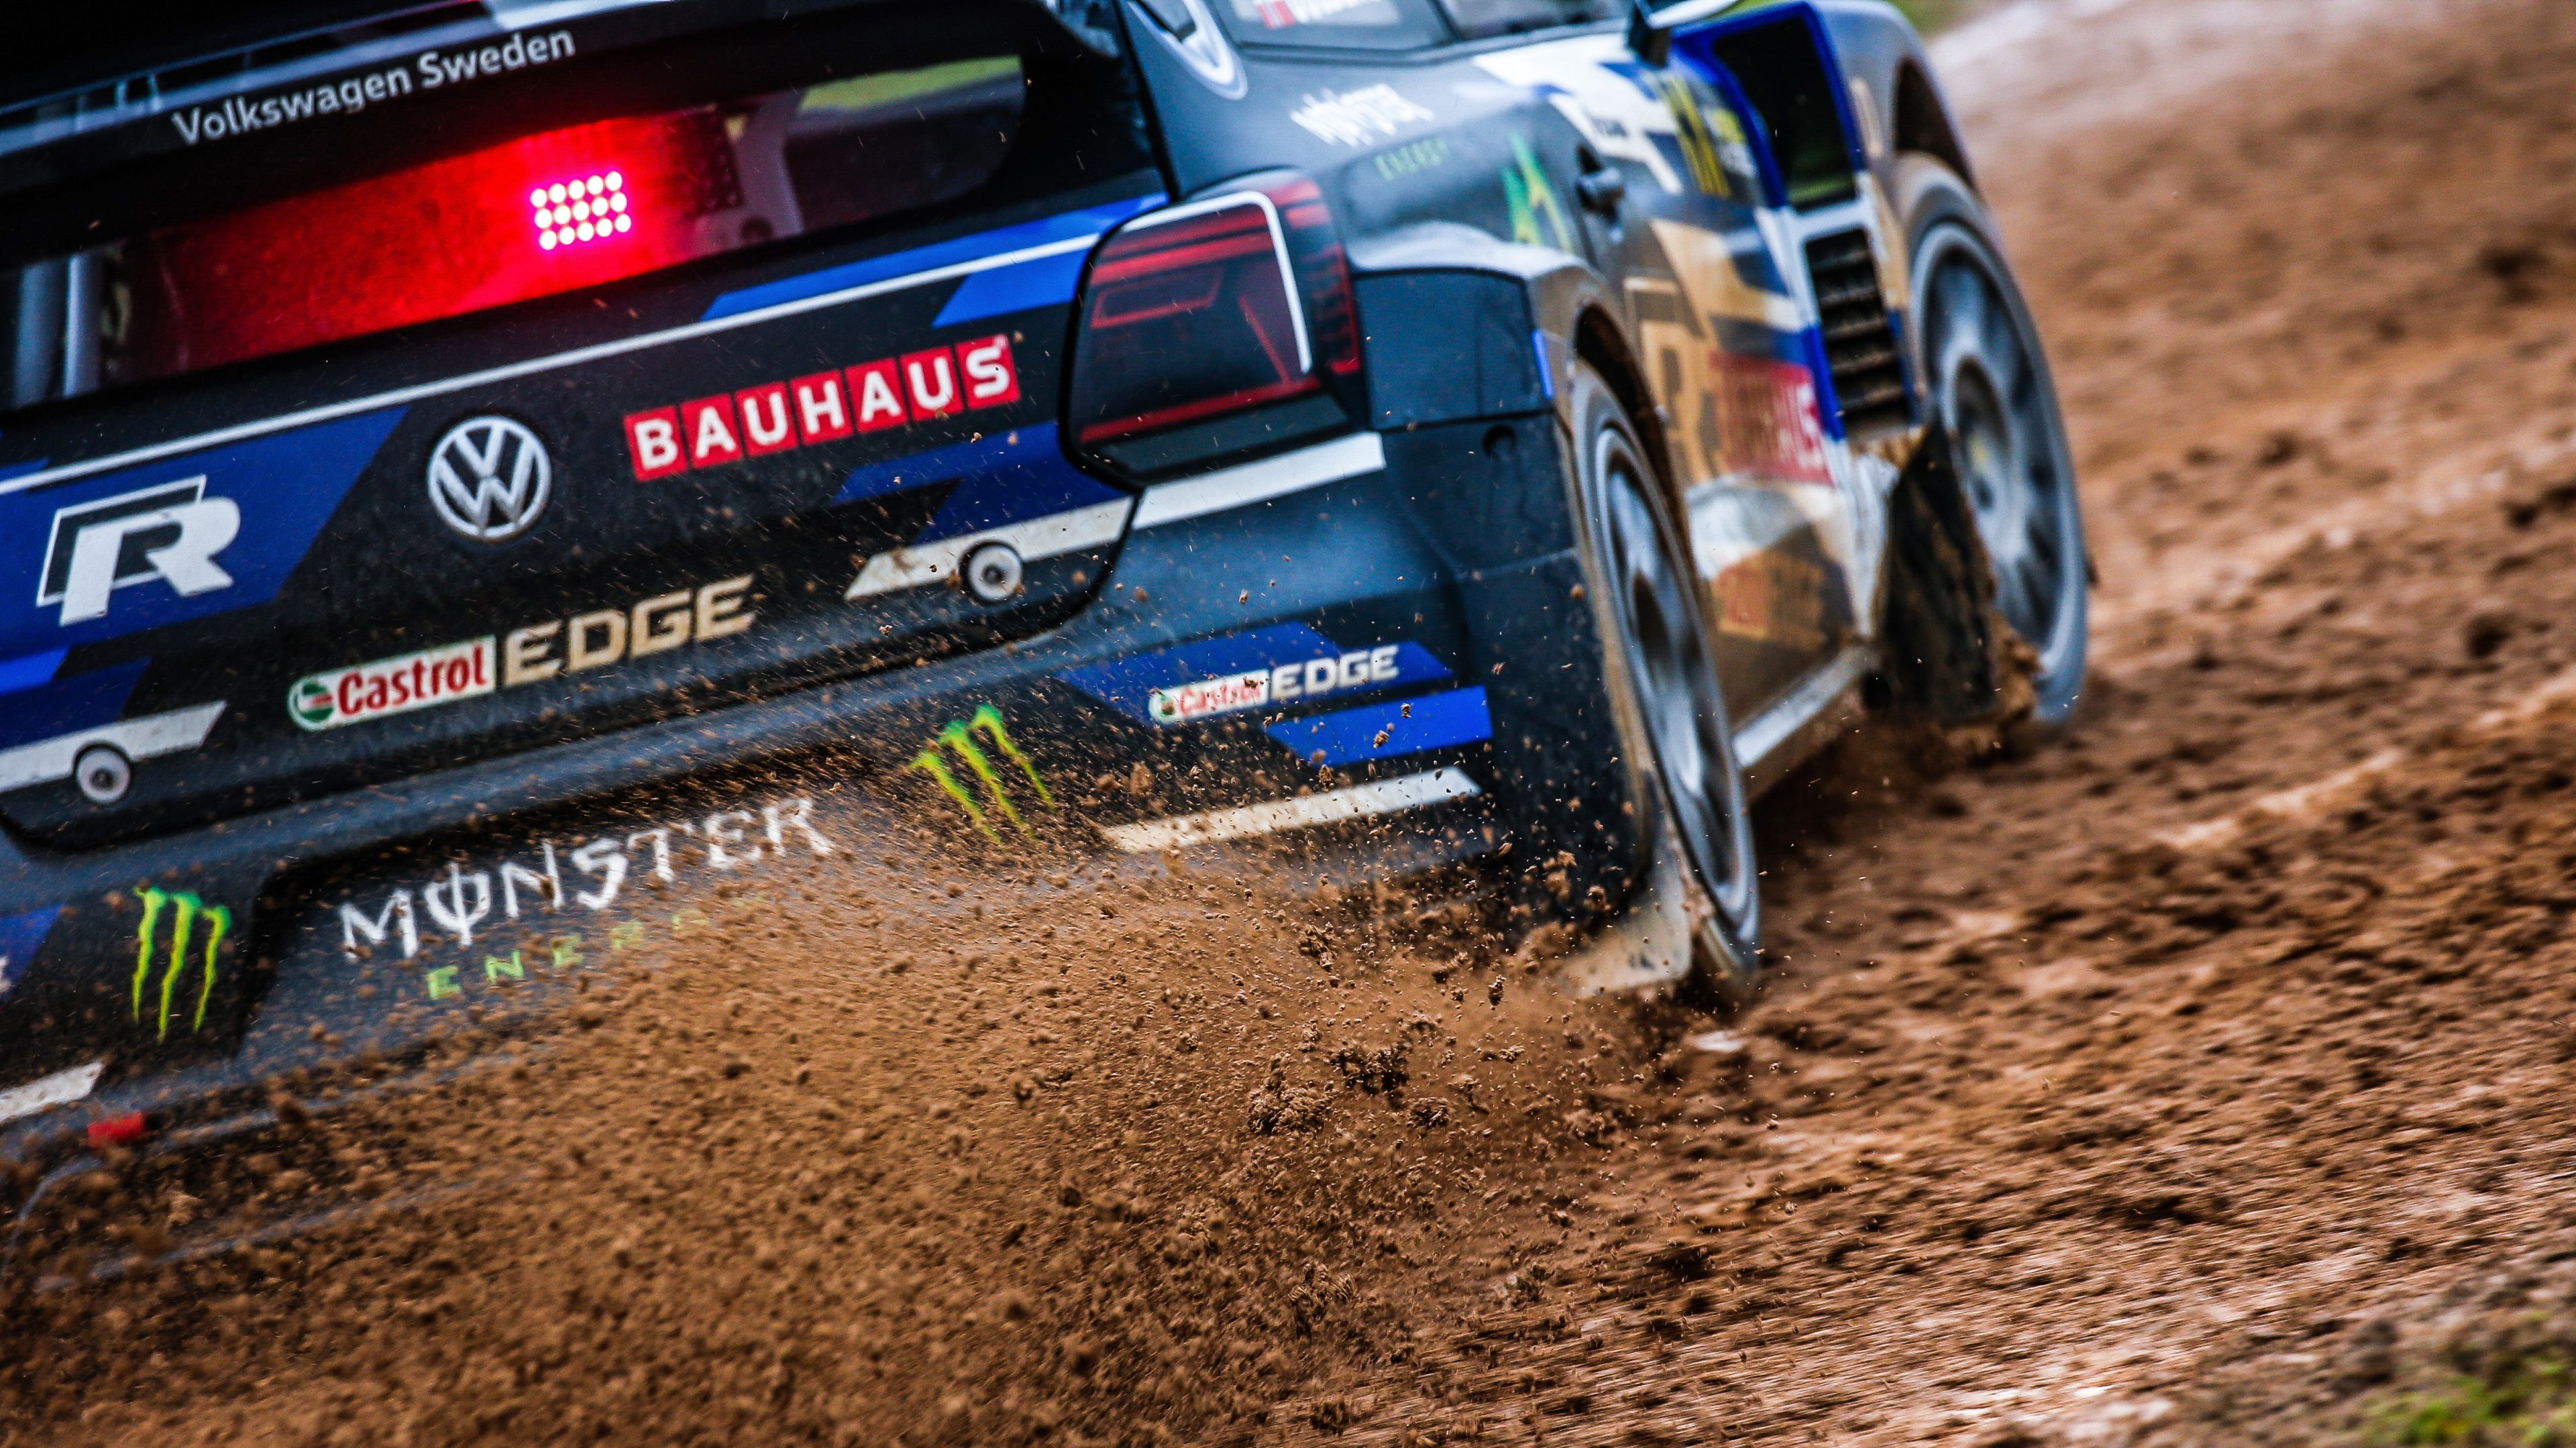 FIA World Rallycross Championship 2018 / Round 01, Barcelona / 13-15 April 20187 // Worldwide Copyright: PSRX Volkswagen